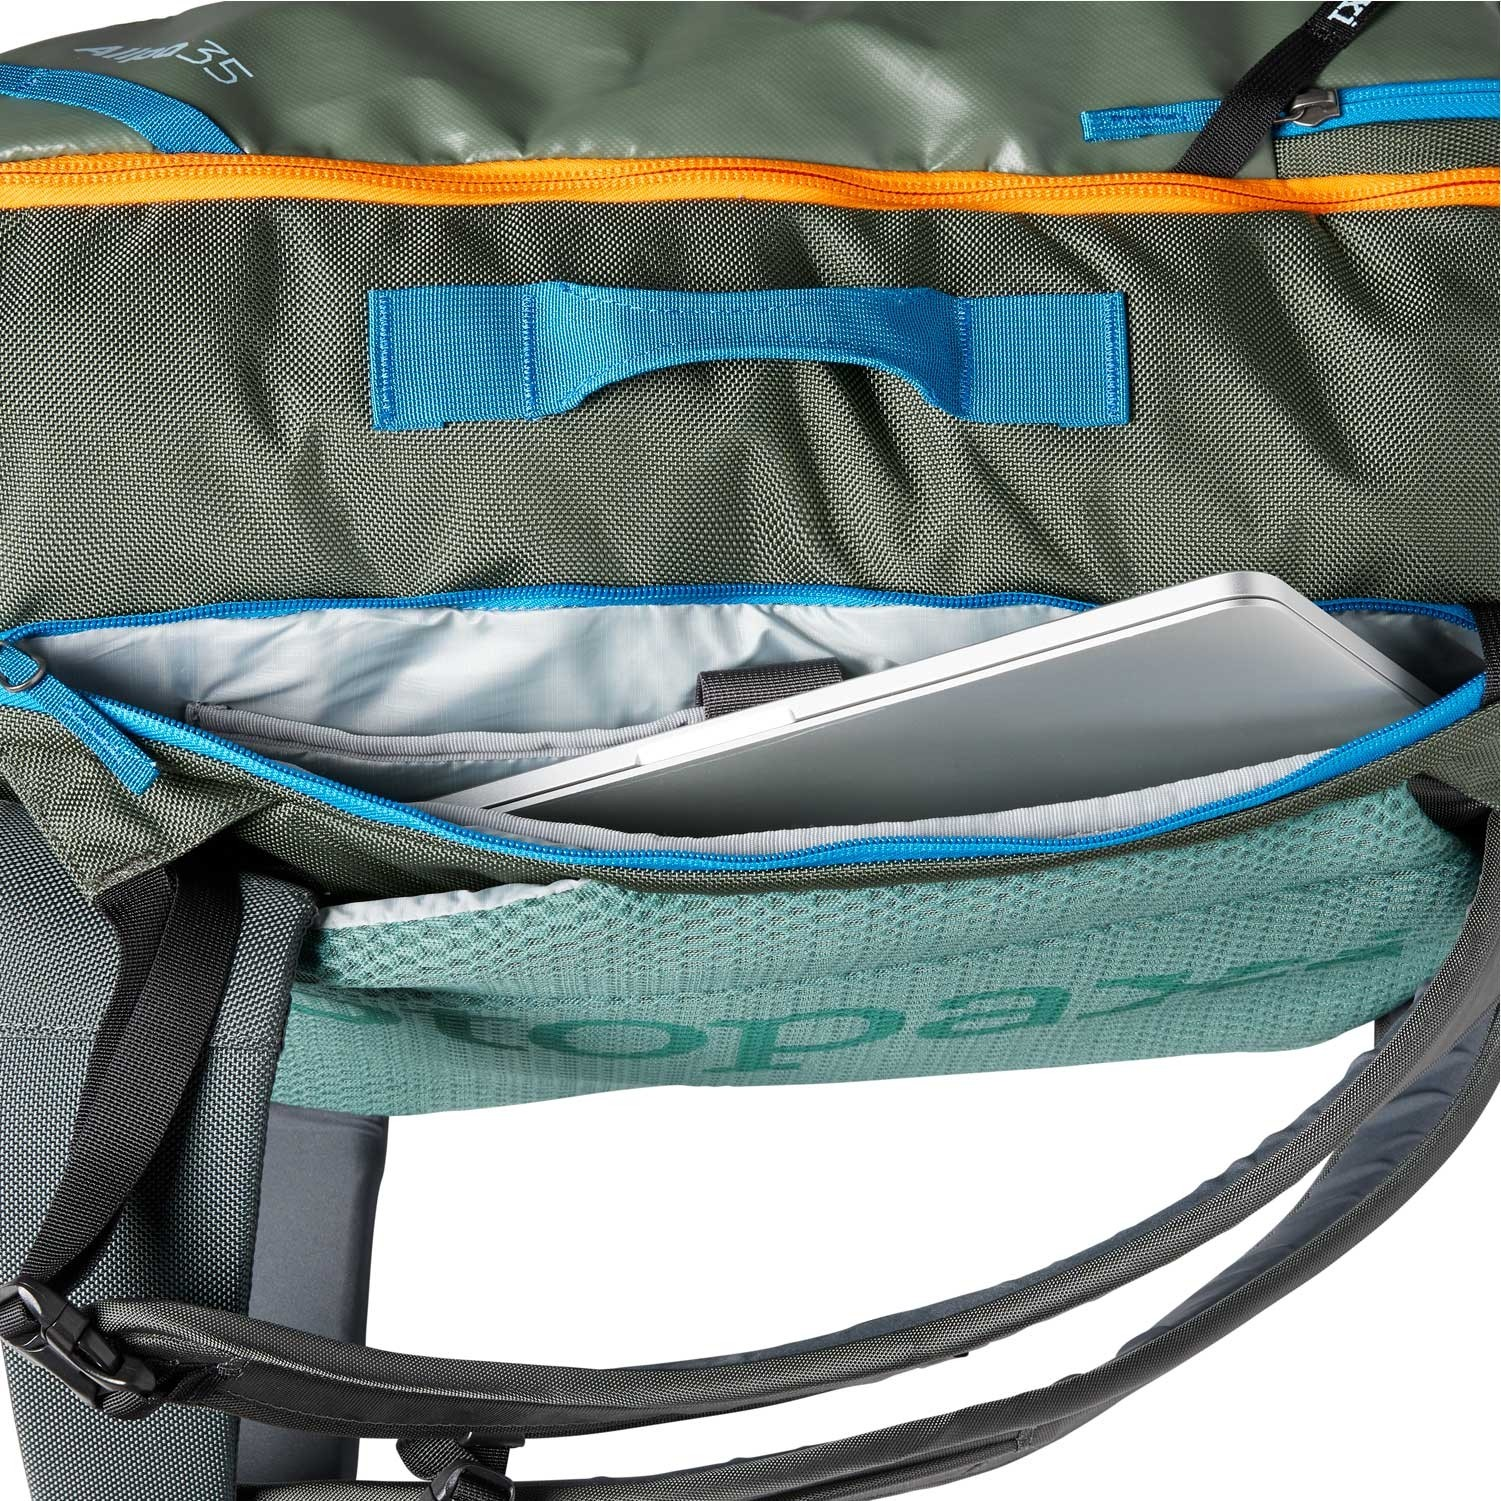 Cotopaxi Allpa 35L Travel Pack - Spruce